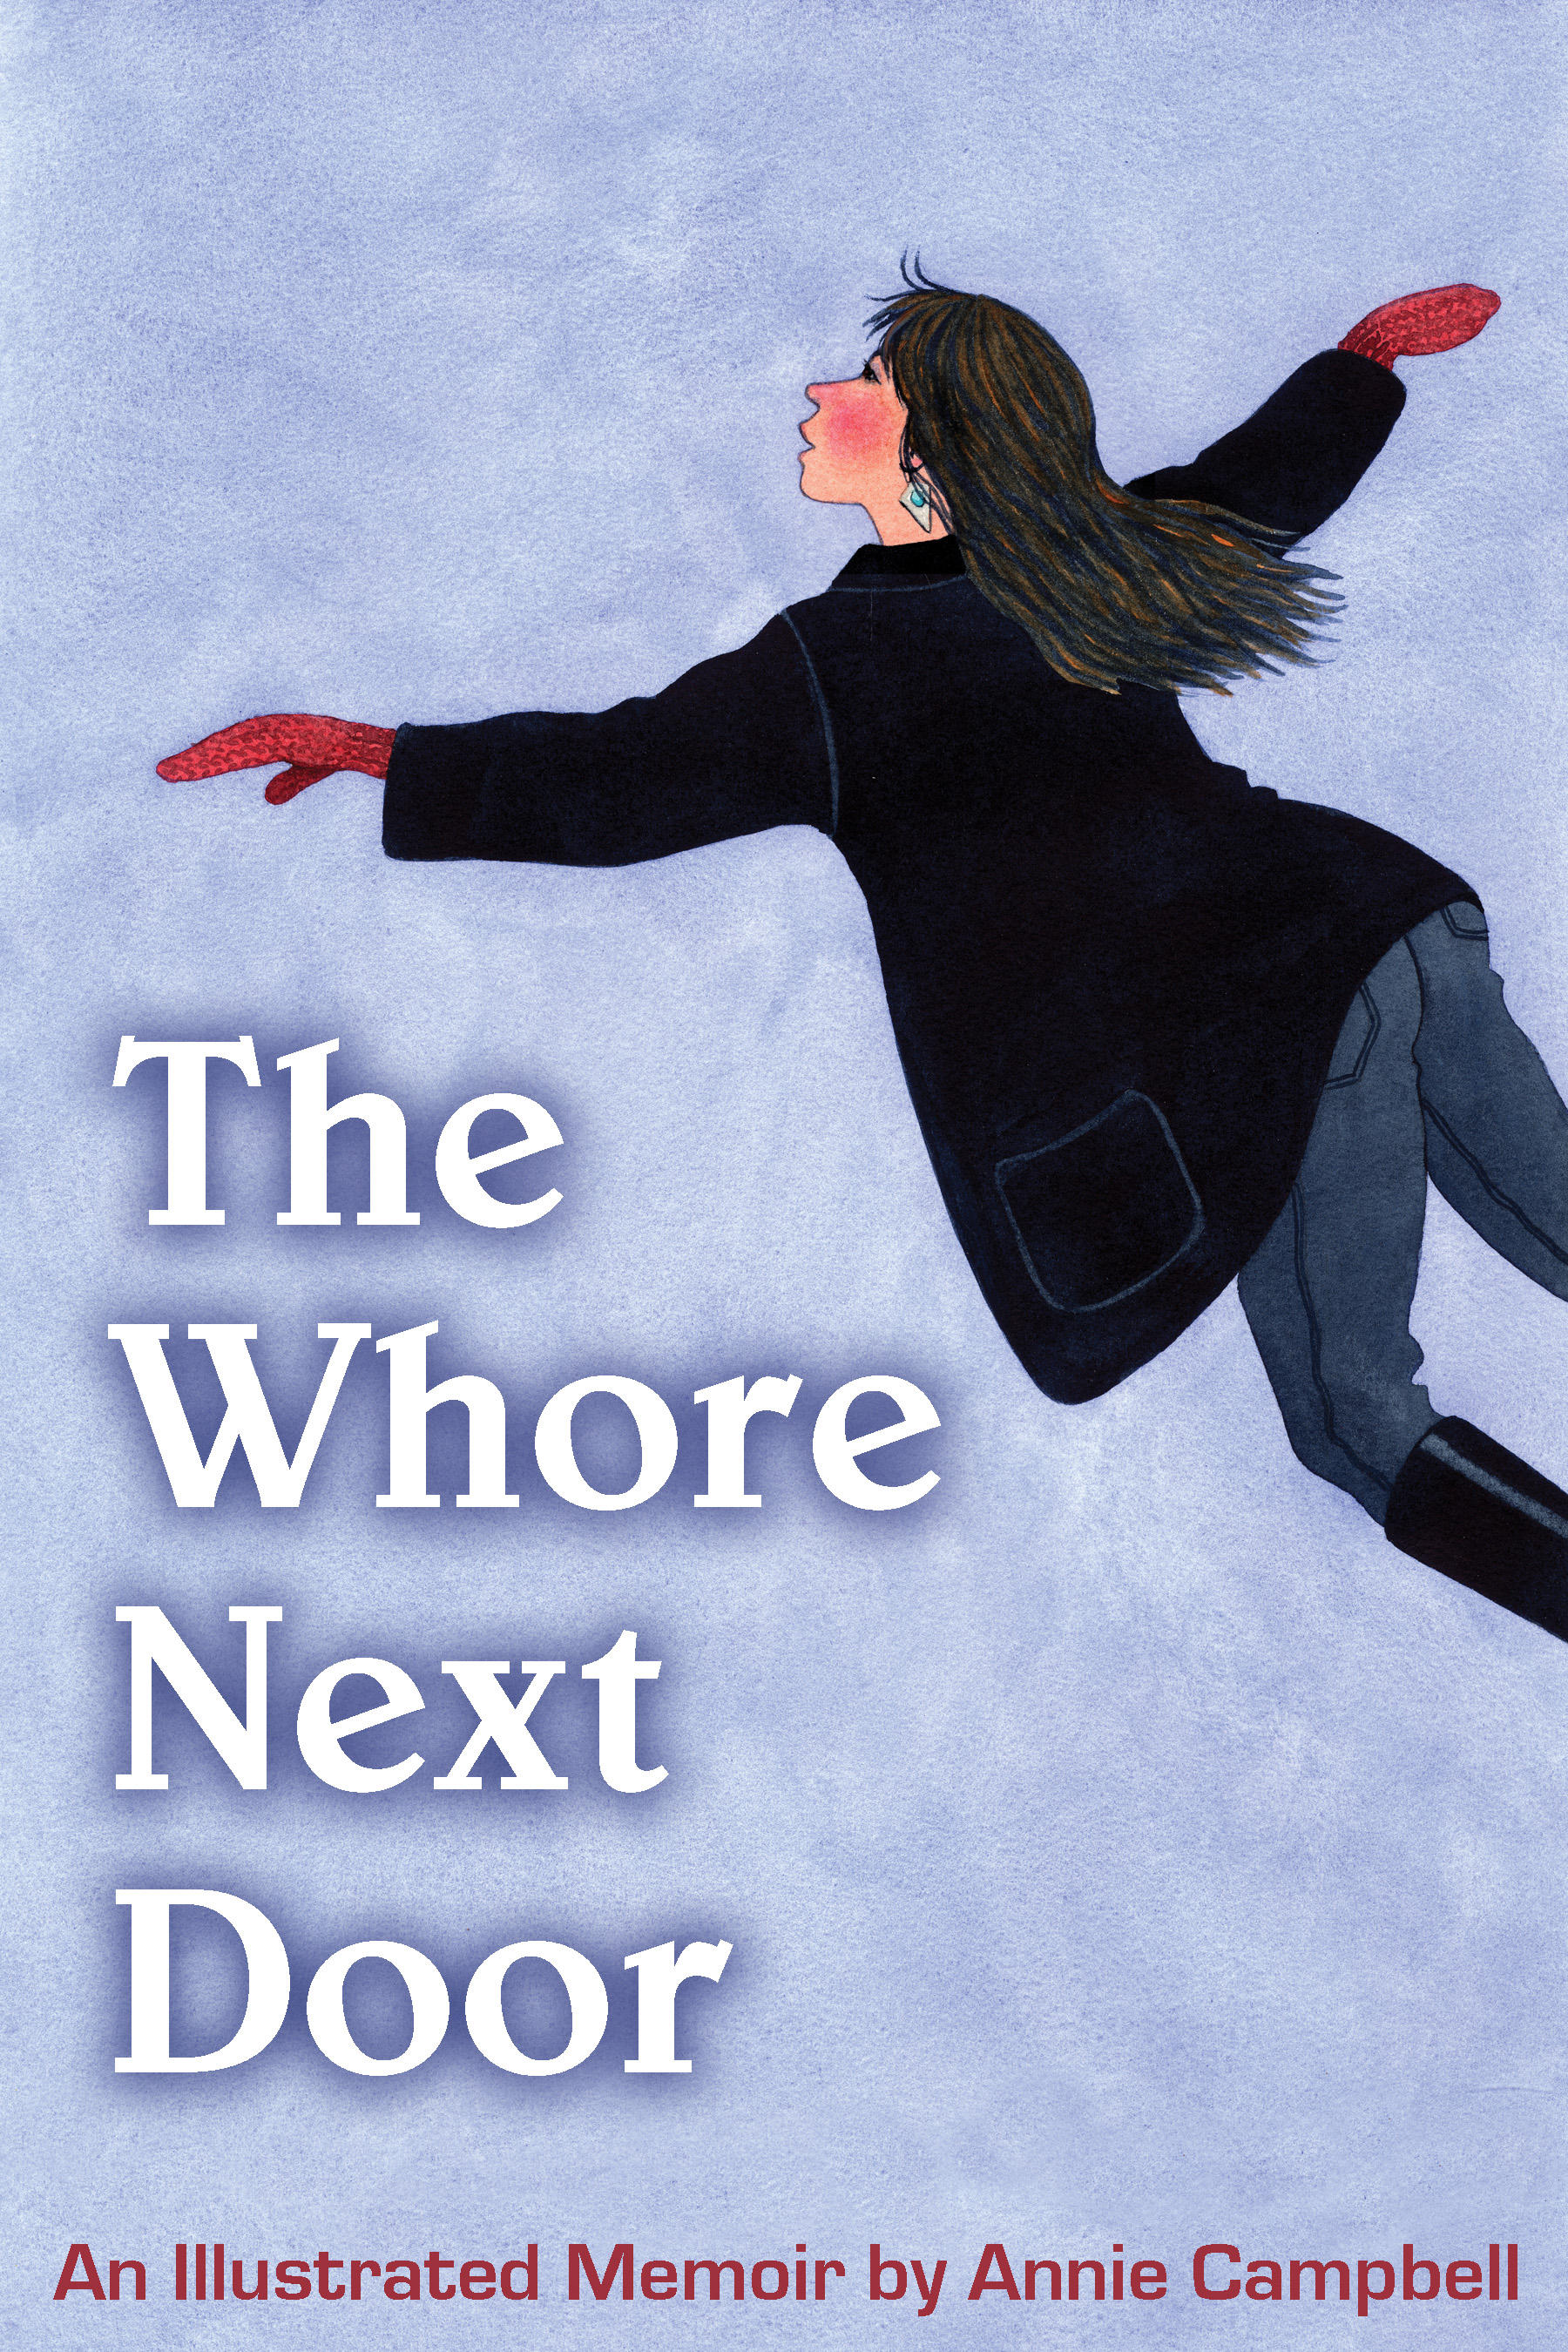 Book nook the whore next door by annie campbell wyso have you ever considered writing your memoir have you had an interesting life do you believe you can express yourself in print in a compelling way solutioingenieria Image collections